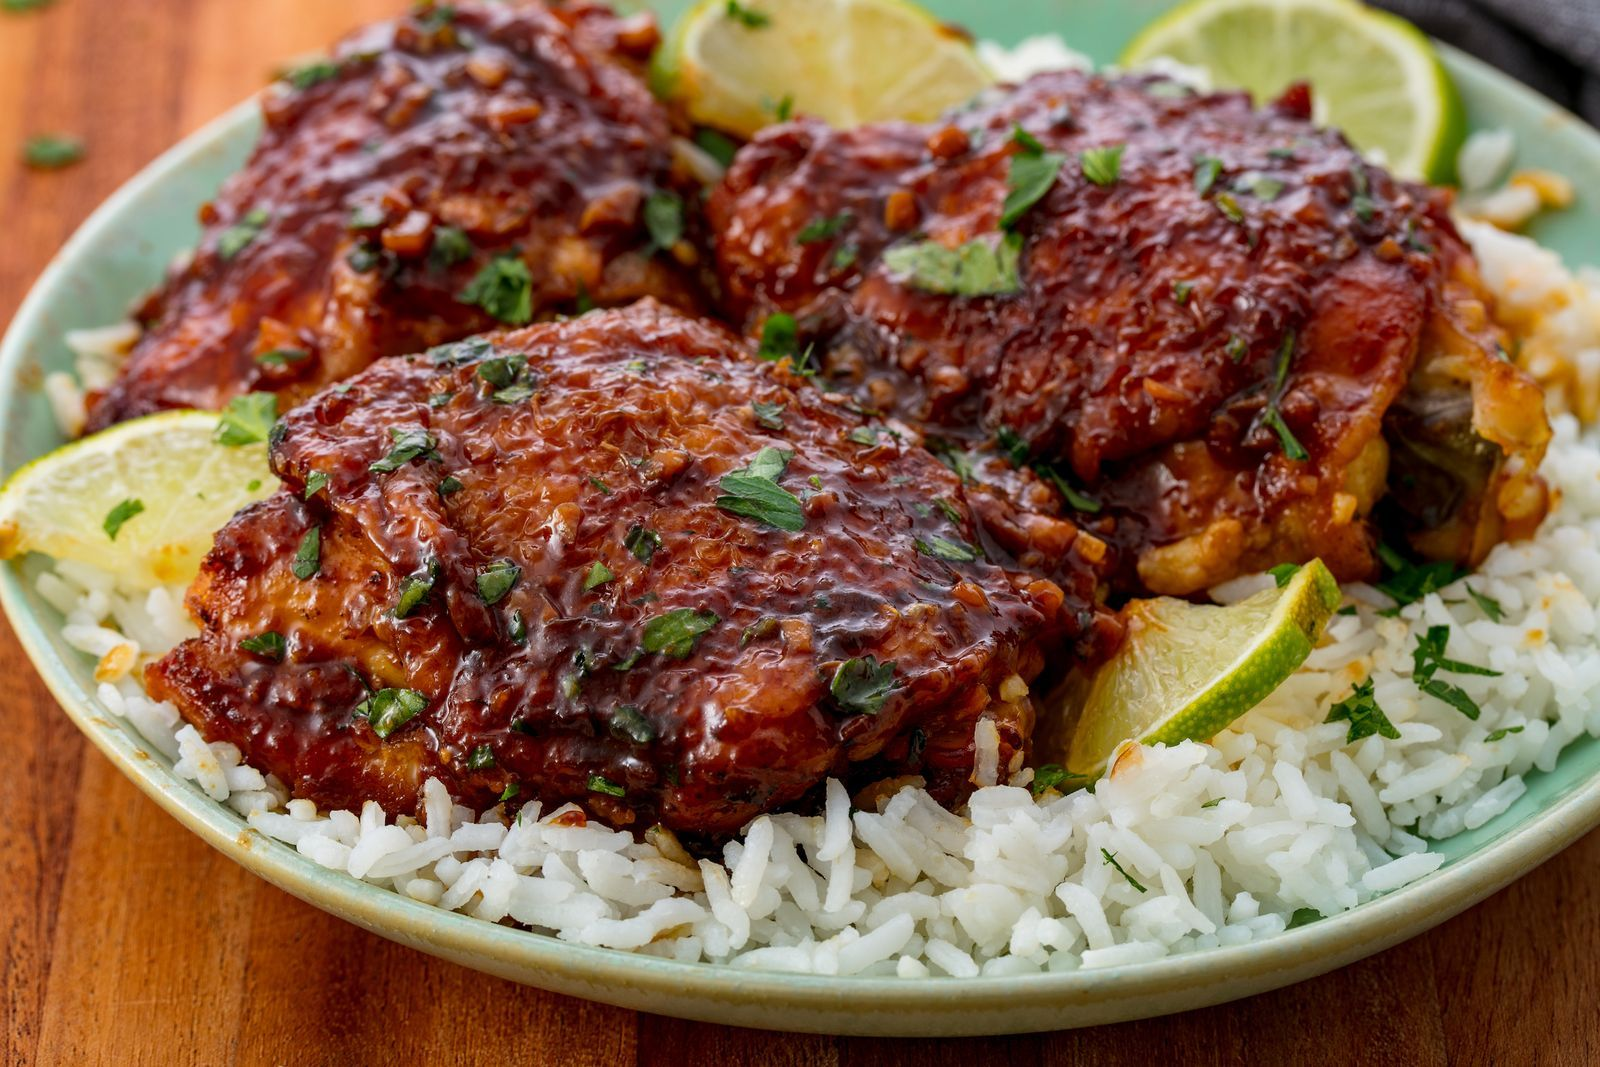 Slow Cooker Chicken Thighs Recipe Slow Cooker Asian Chicken Slow Cooker Chicken Thighs Easy Chicken Dinner Recipes